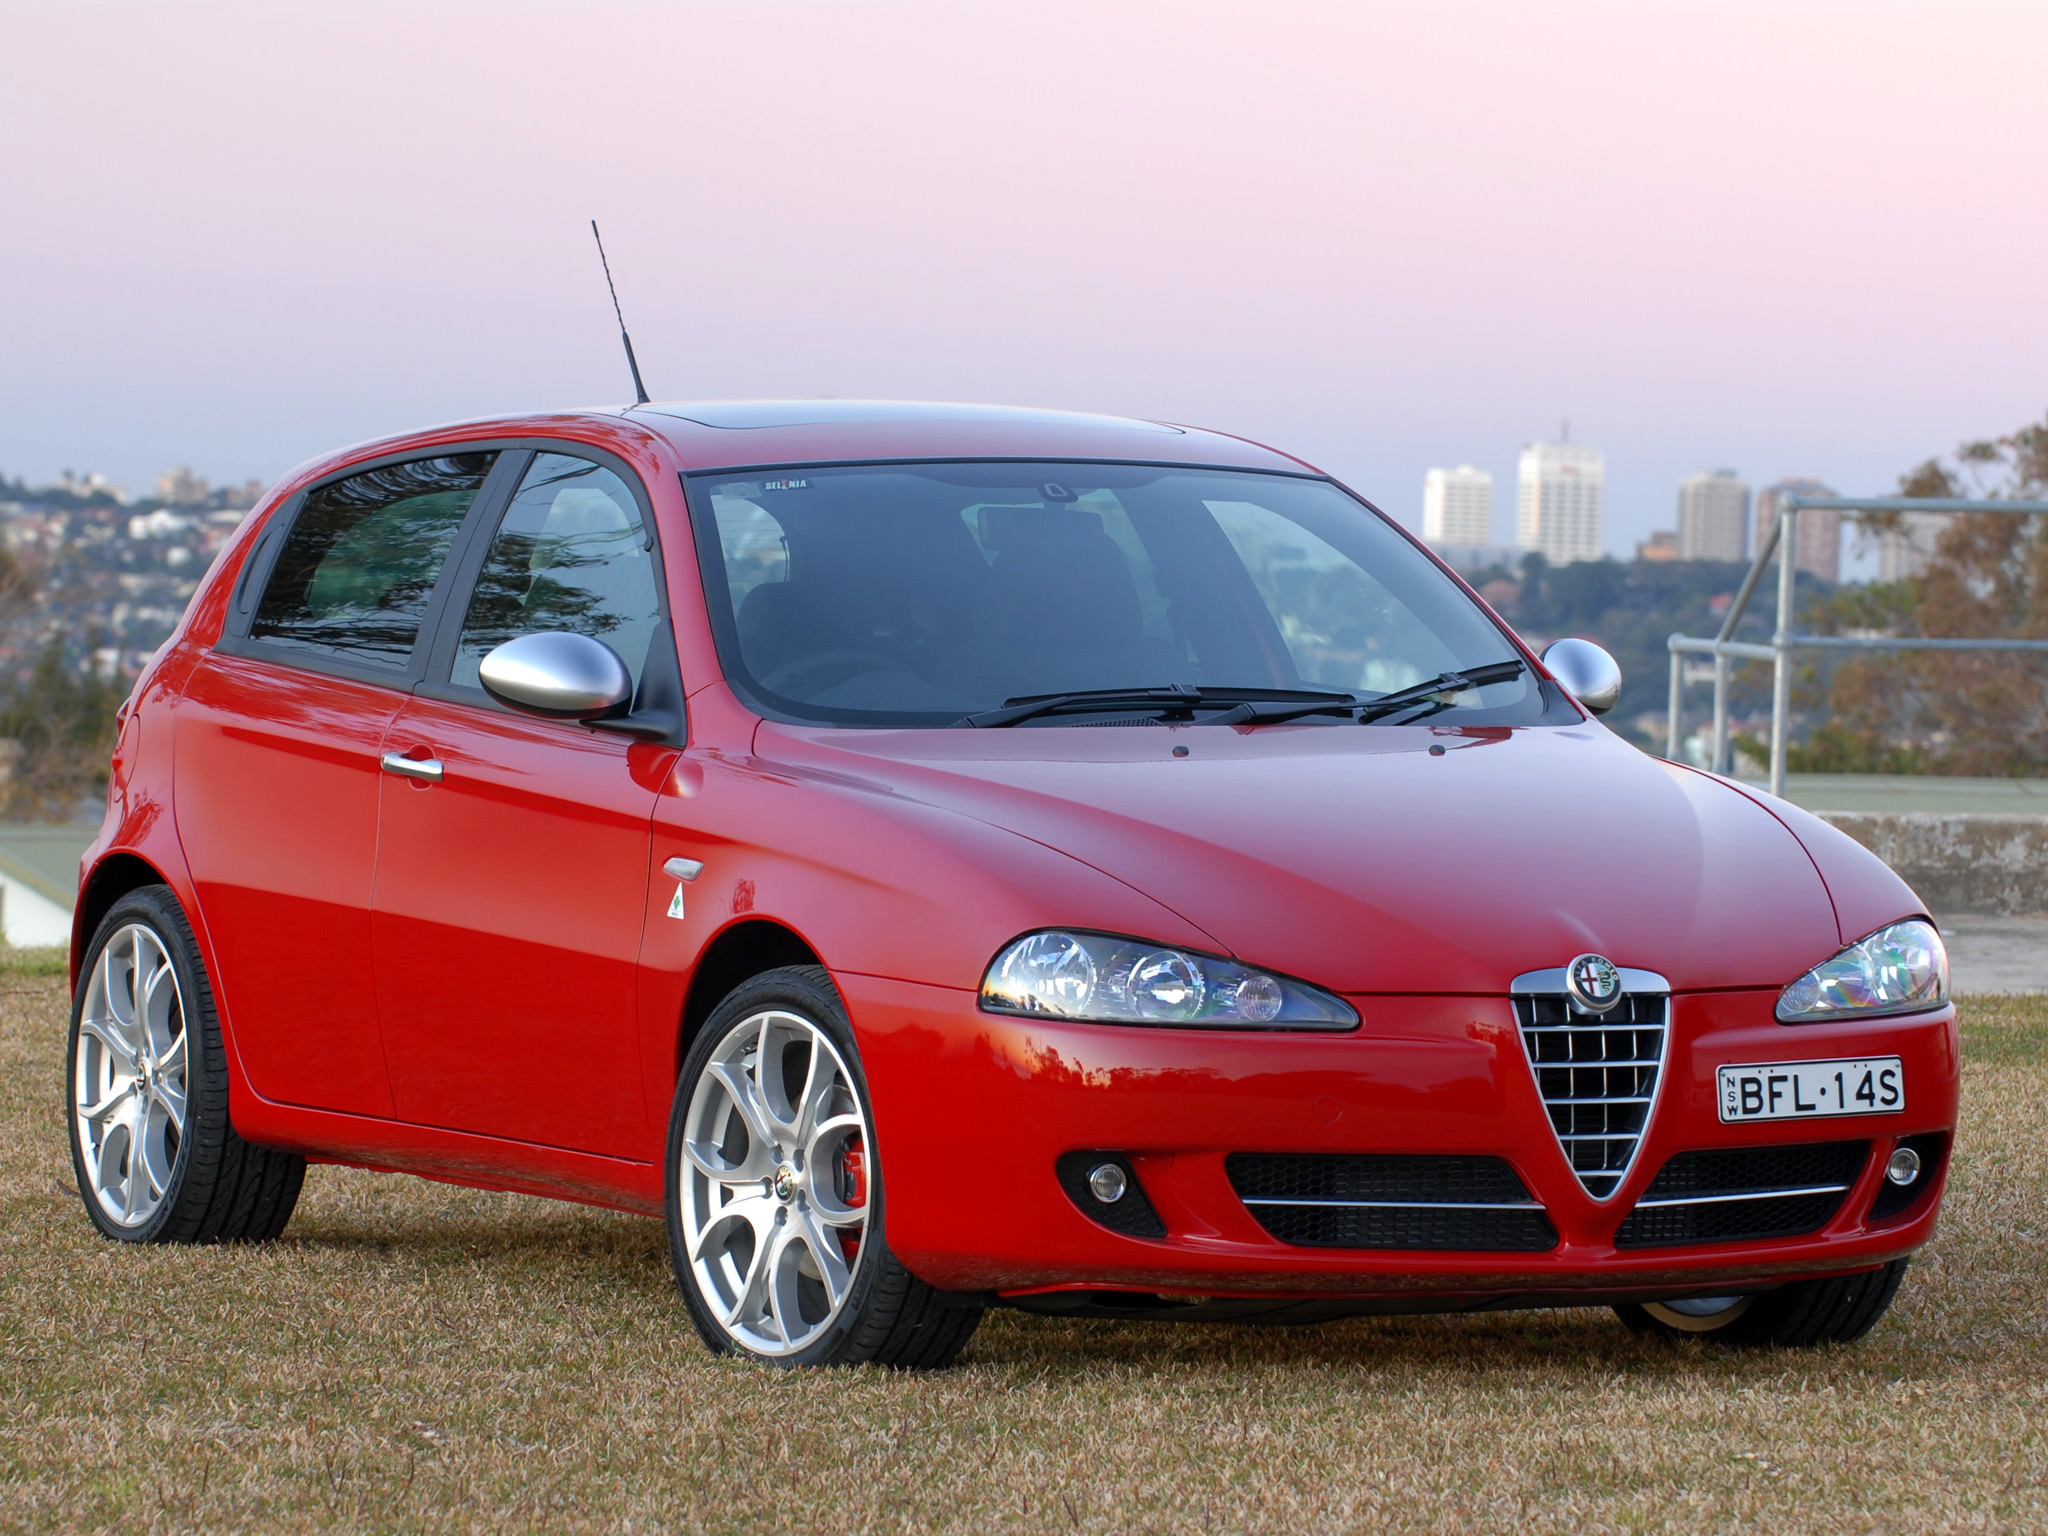 2008 alfa romeo 147 photos informations articles. Black Bedroom Furniture Sets. Home Design Ideas